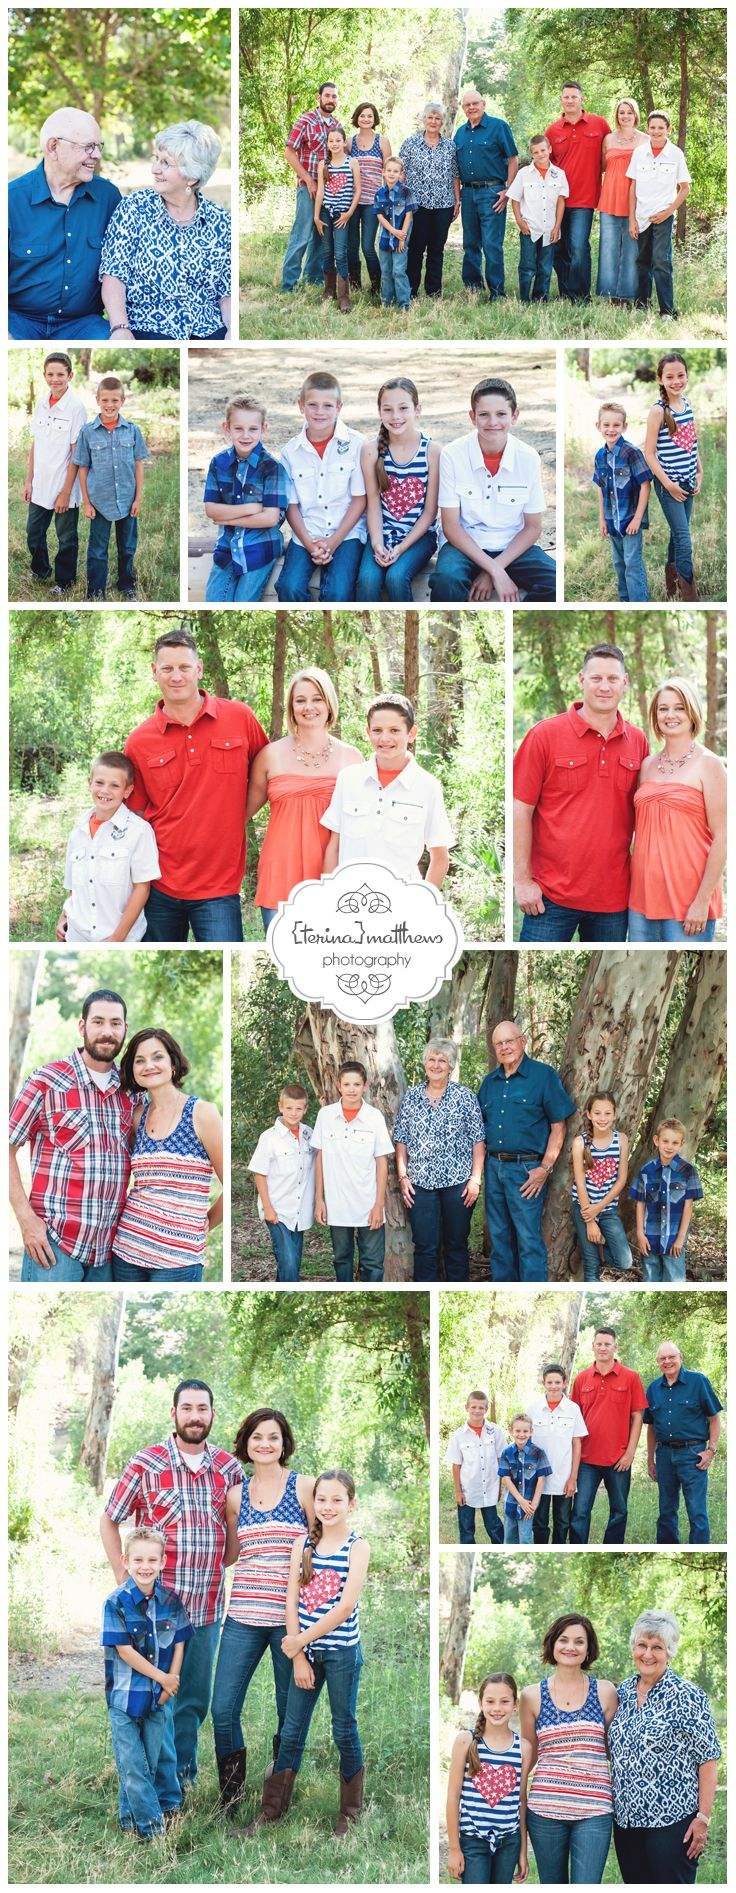 12 best Family Photos images on Pinterest   Family portraits ...